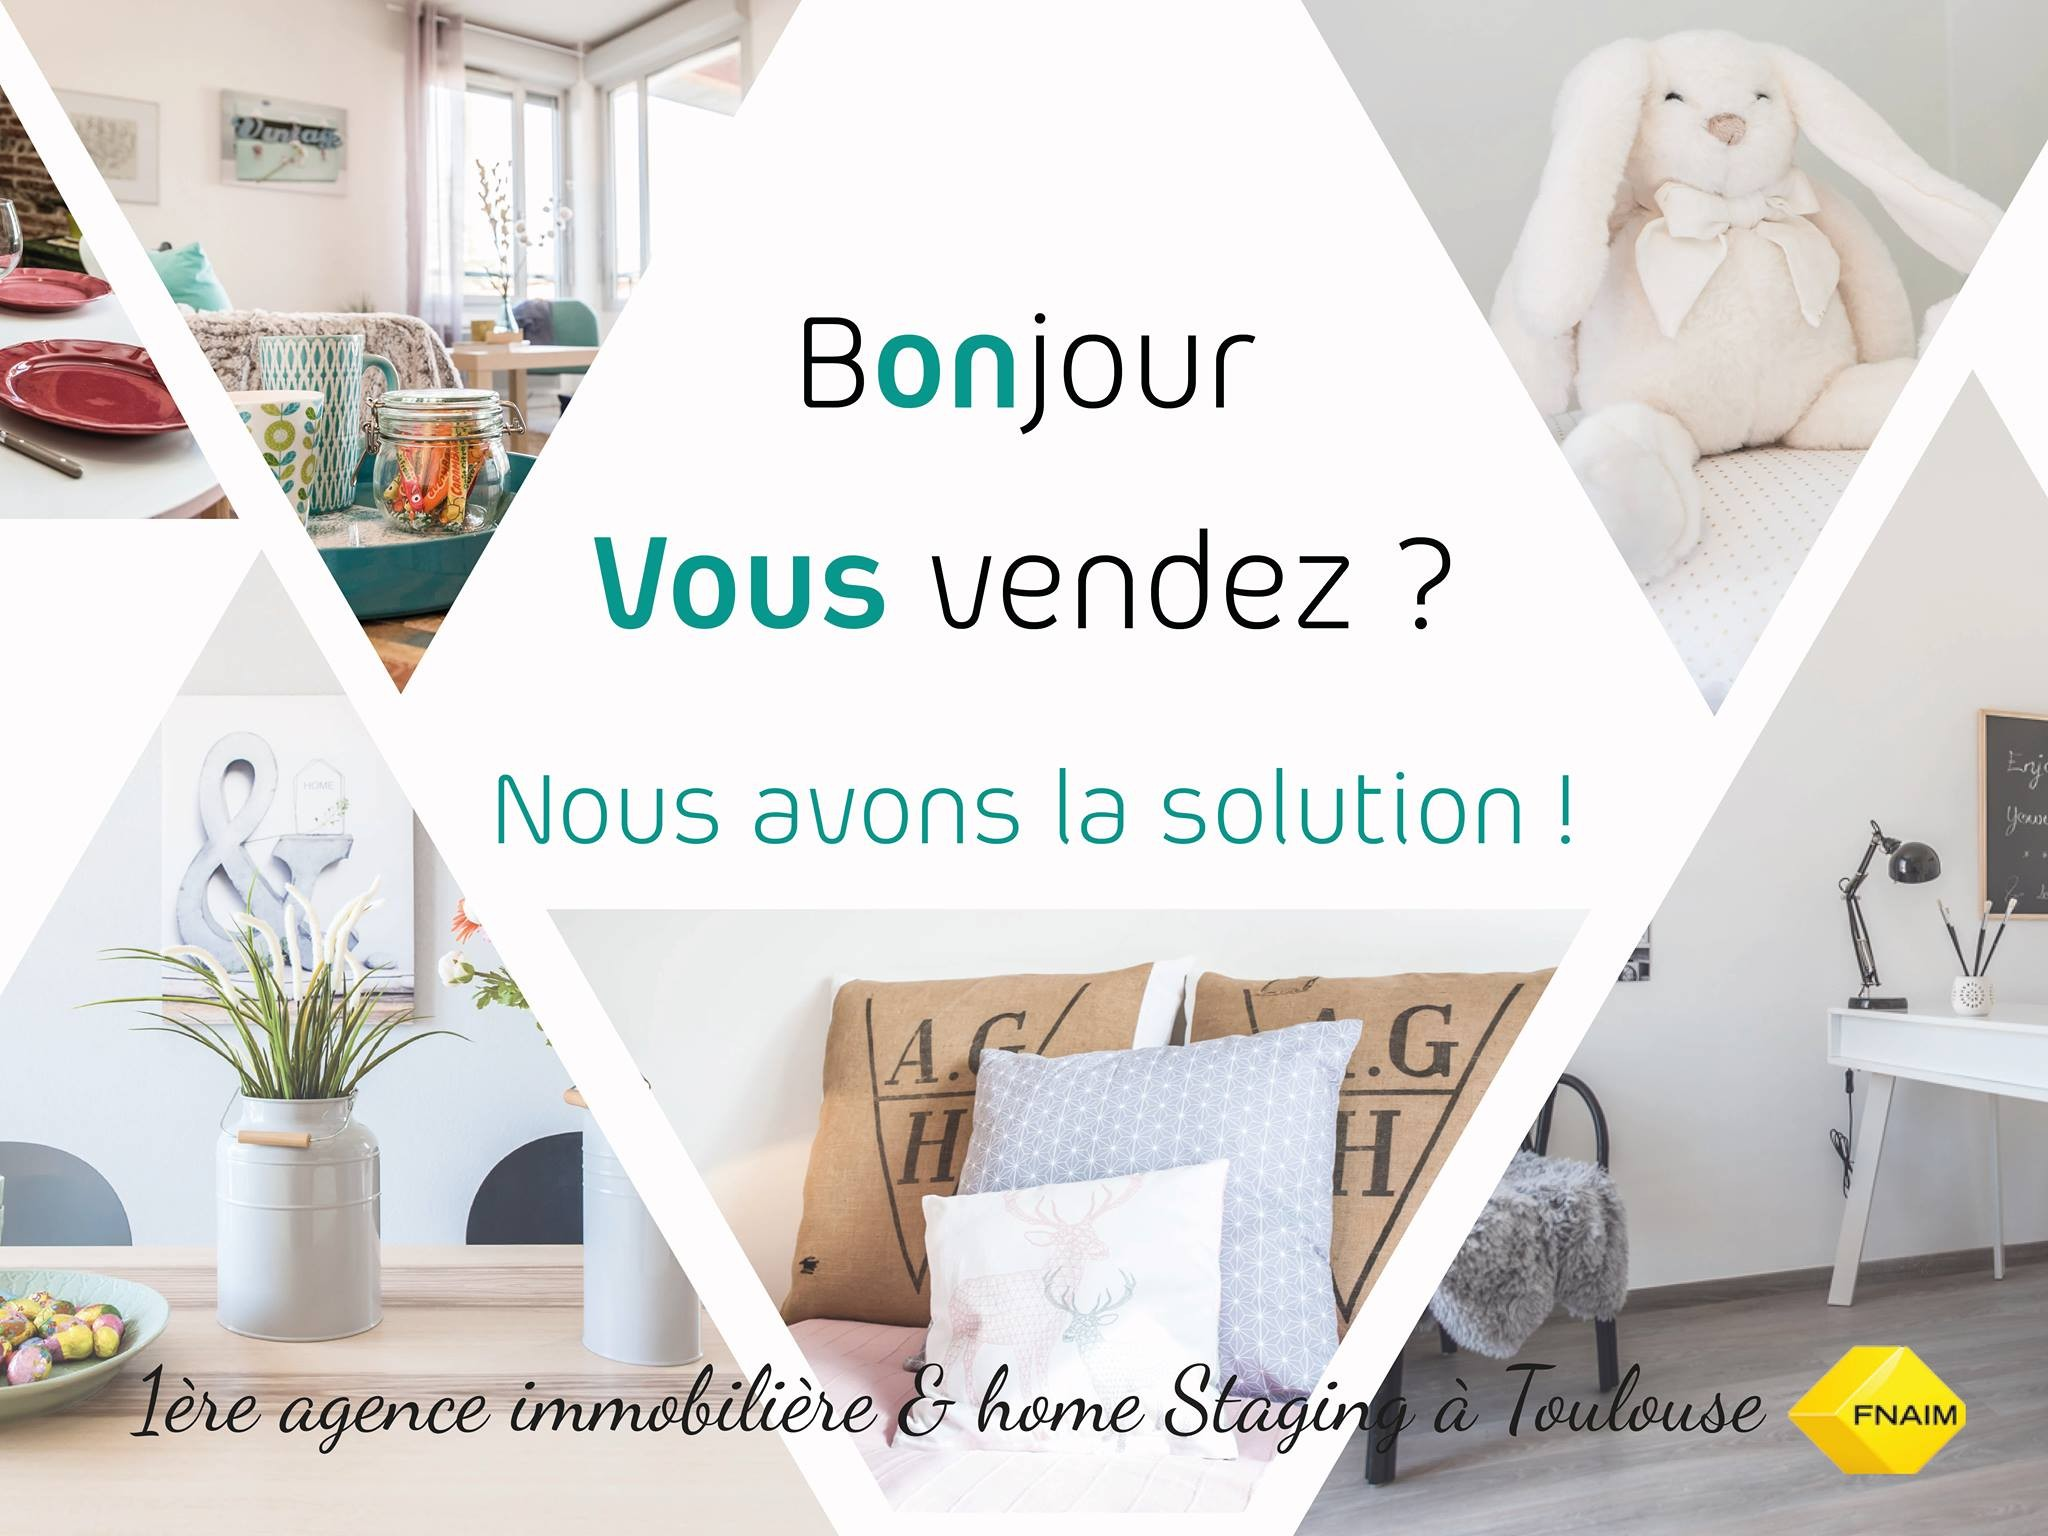 Agence Immobilière Home Staging l'immovation agence immobilière & home staging   linkedin